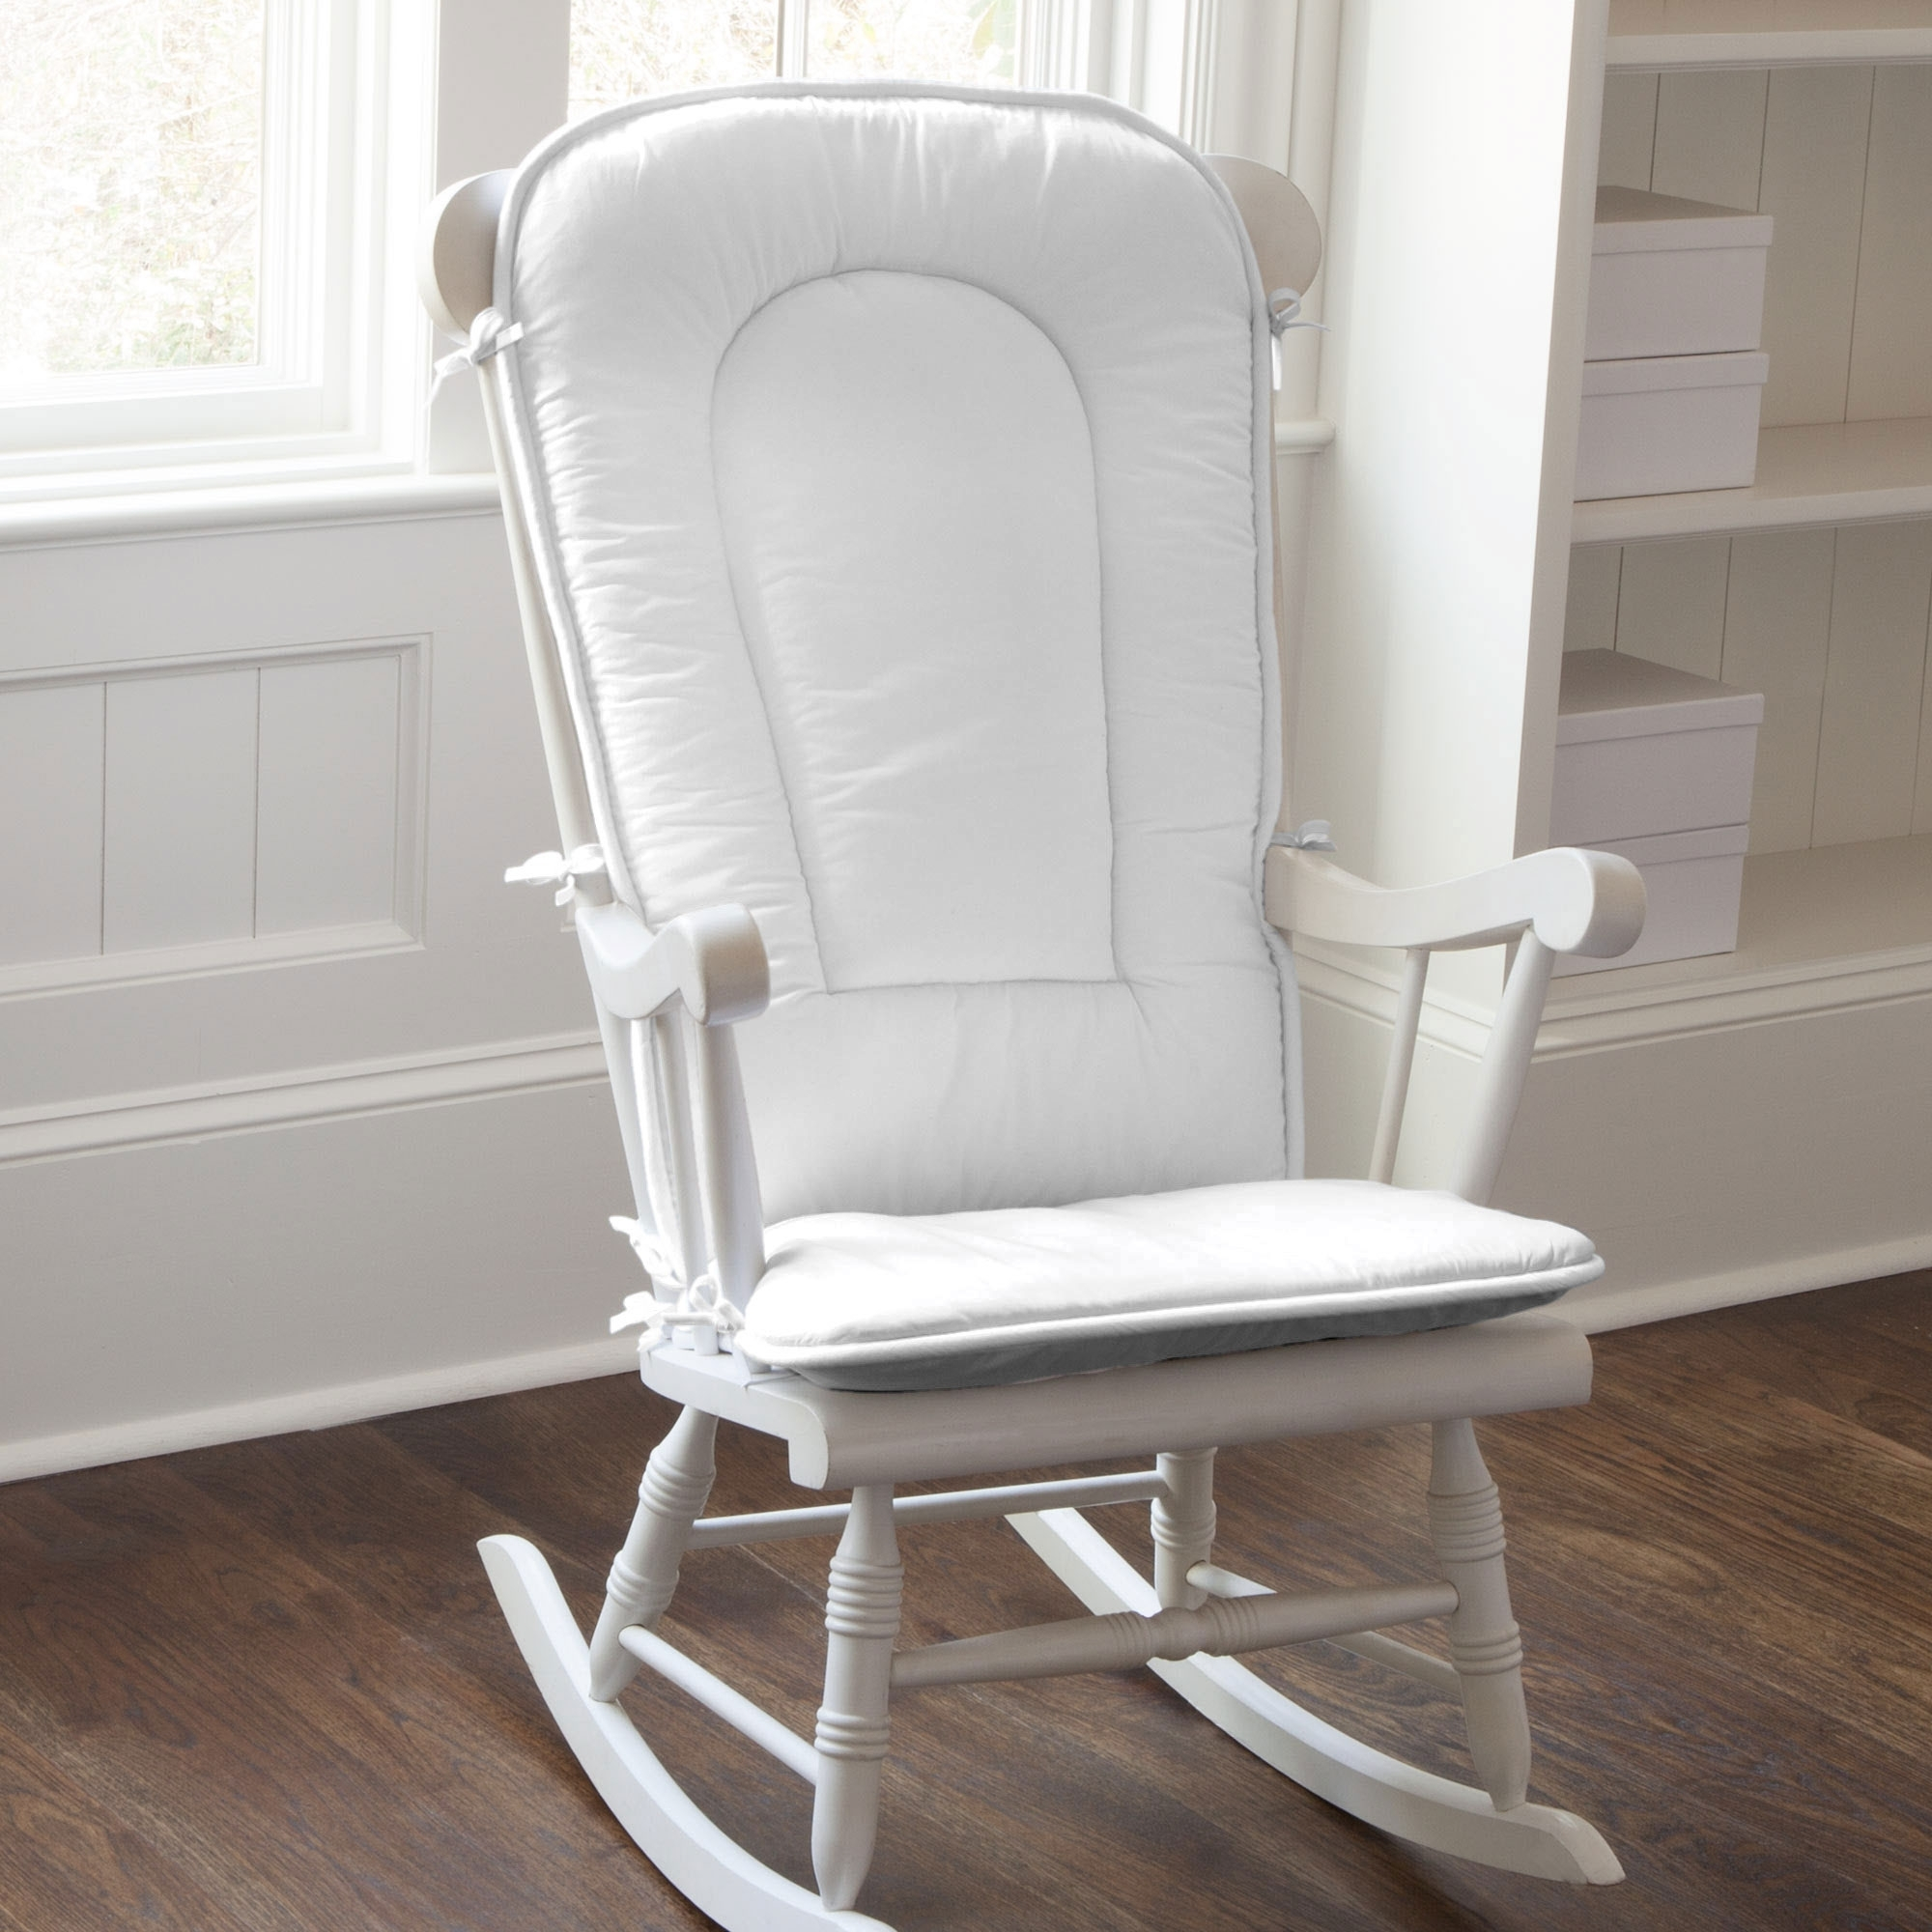 Trendy Rocking Chairs For Baby Room Regarding Living Room Furniture : Rocking Chairs For Baby Nursery Wooden (View 15 of 15)